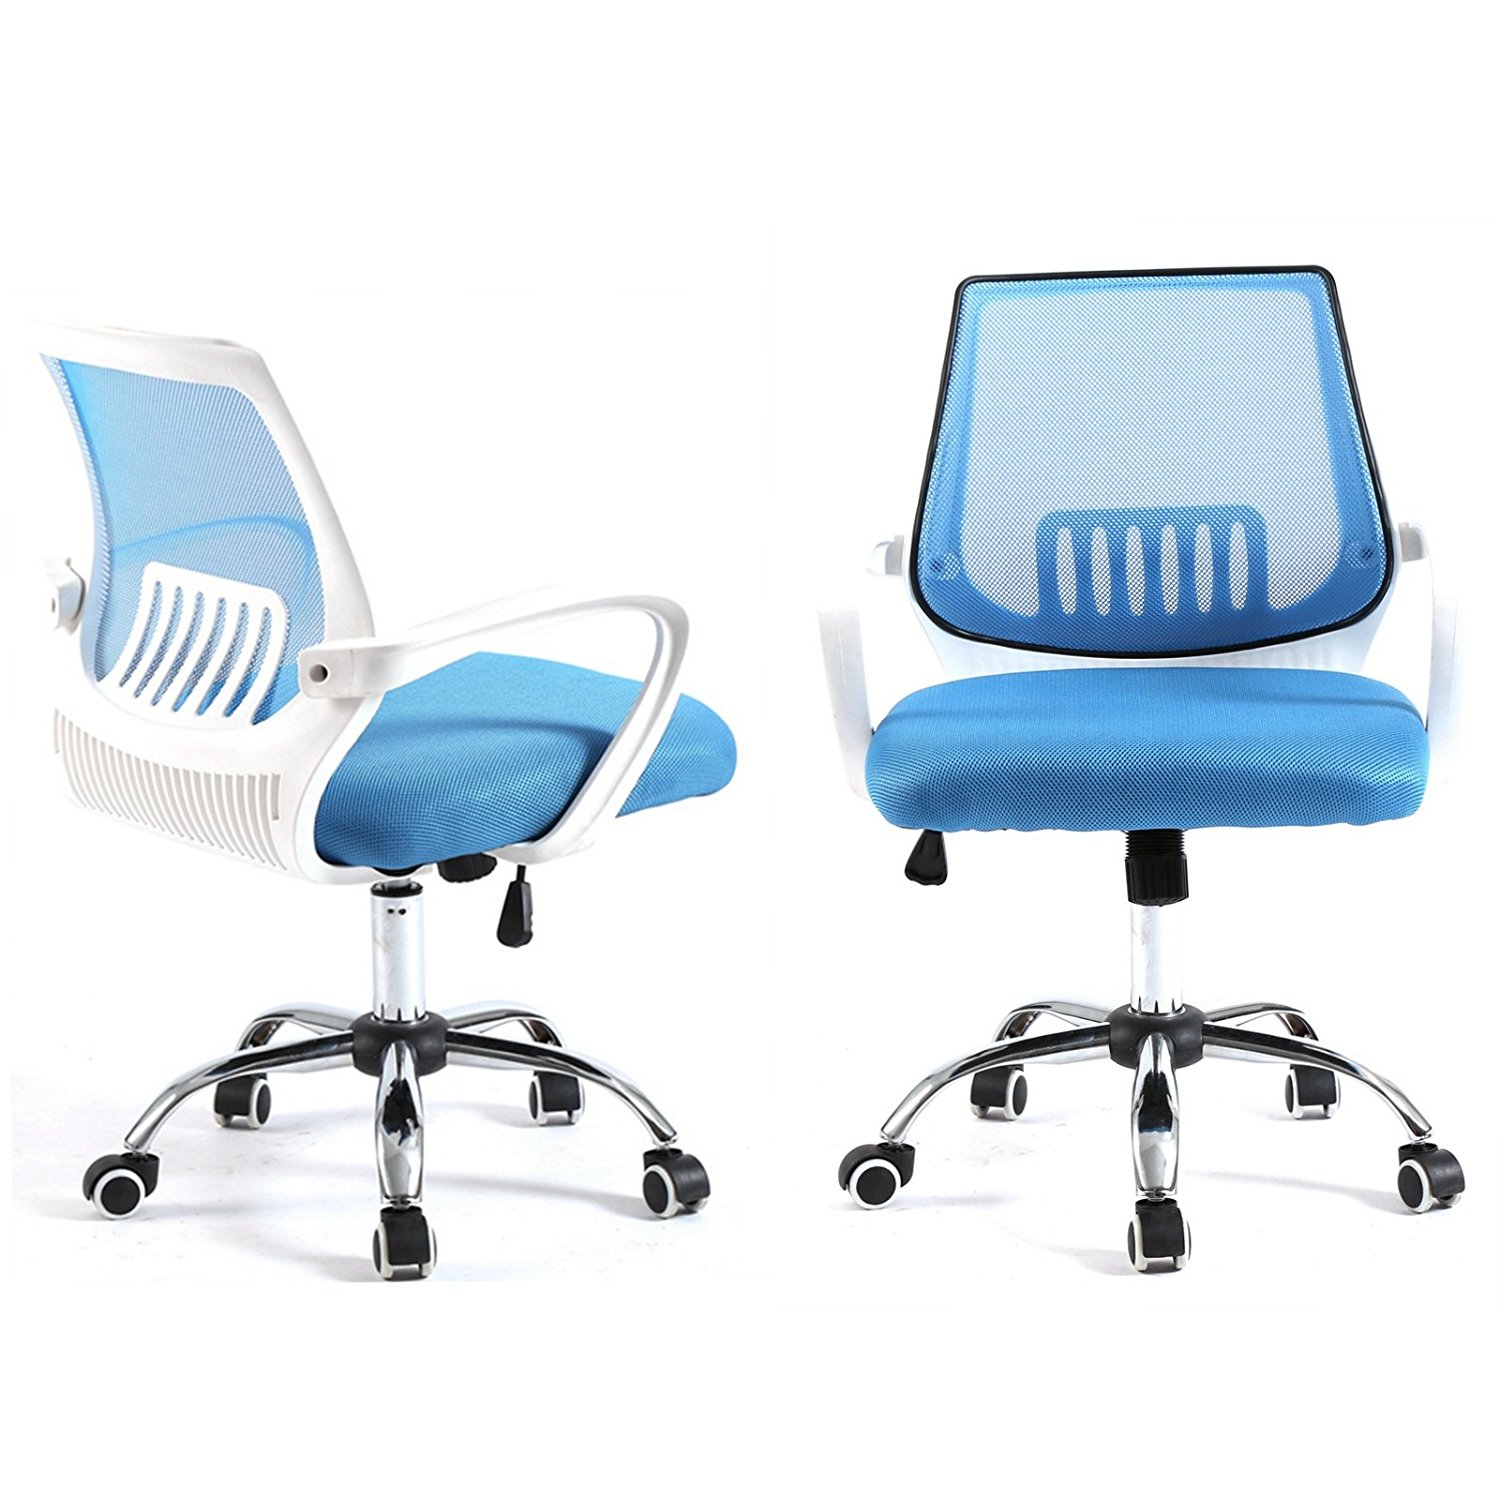 Magshion Modern Mid Back Mesh Drafting Computer Office Desk Chair Commercial Task Chairs Blue White Walmart Com Walmart Com